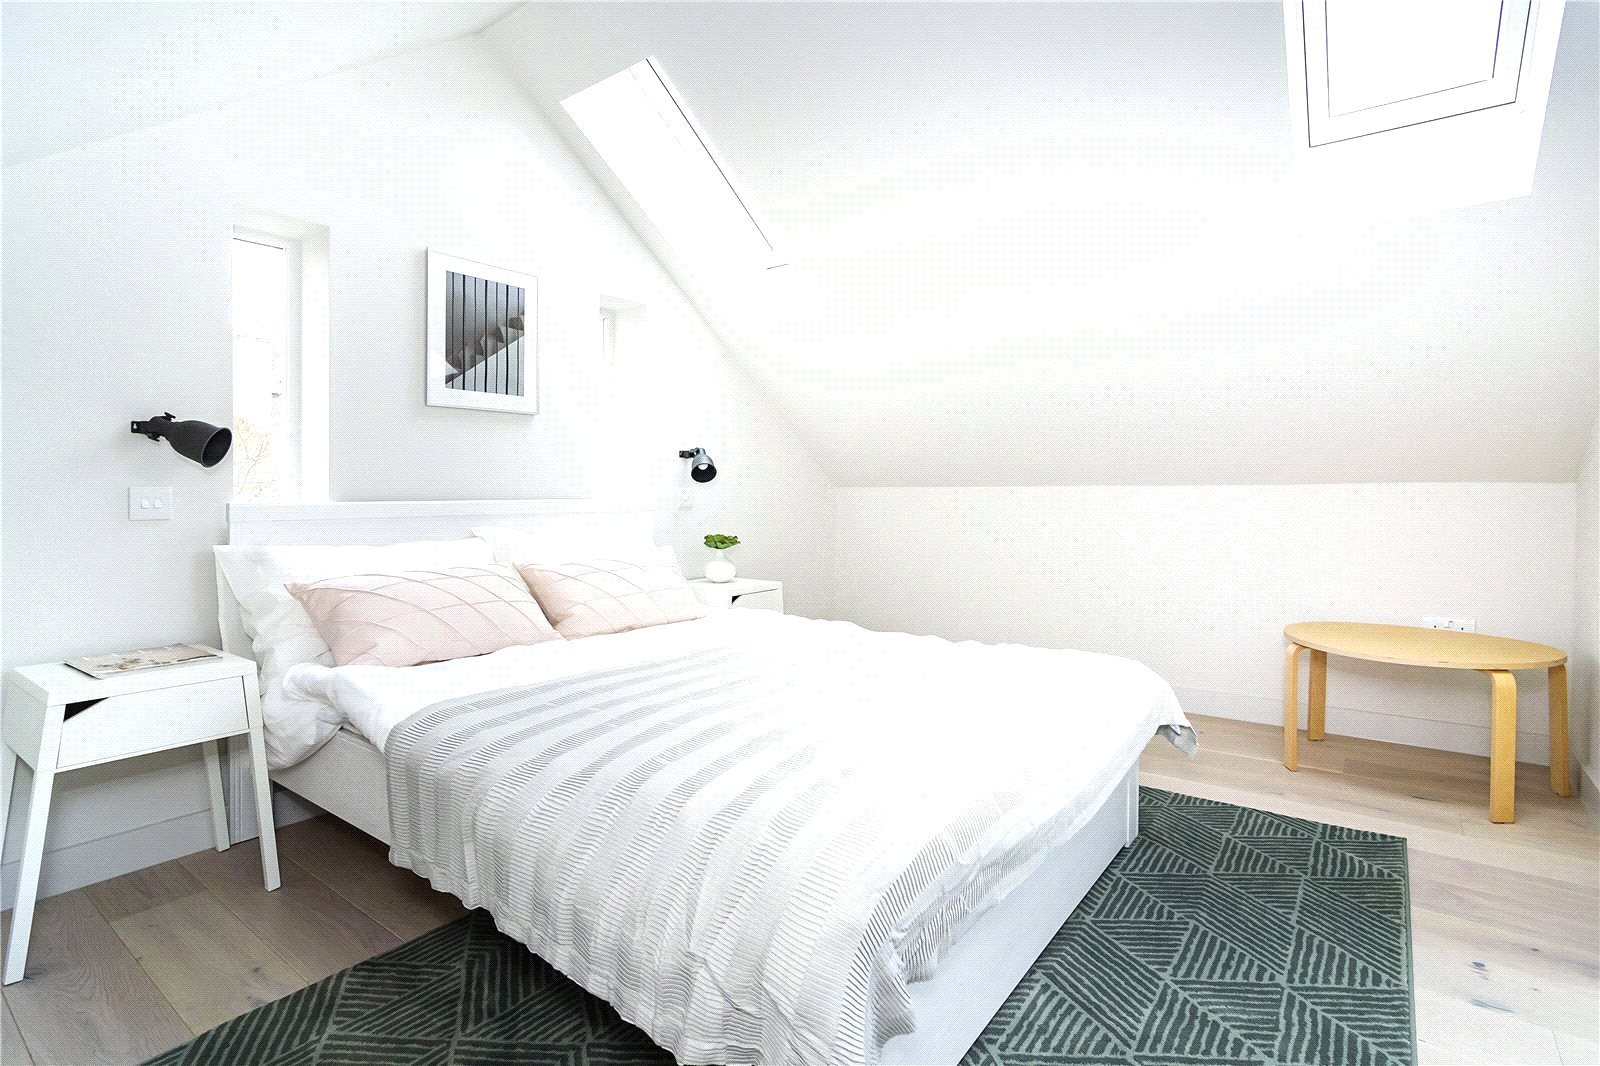 There's an airy bedroom on the mezzanine level